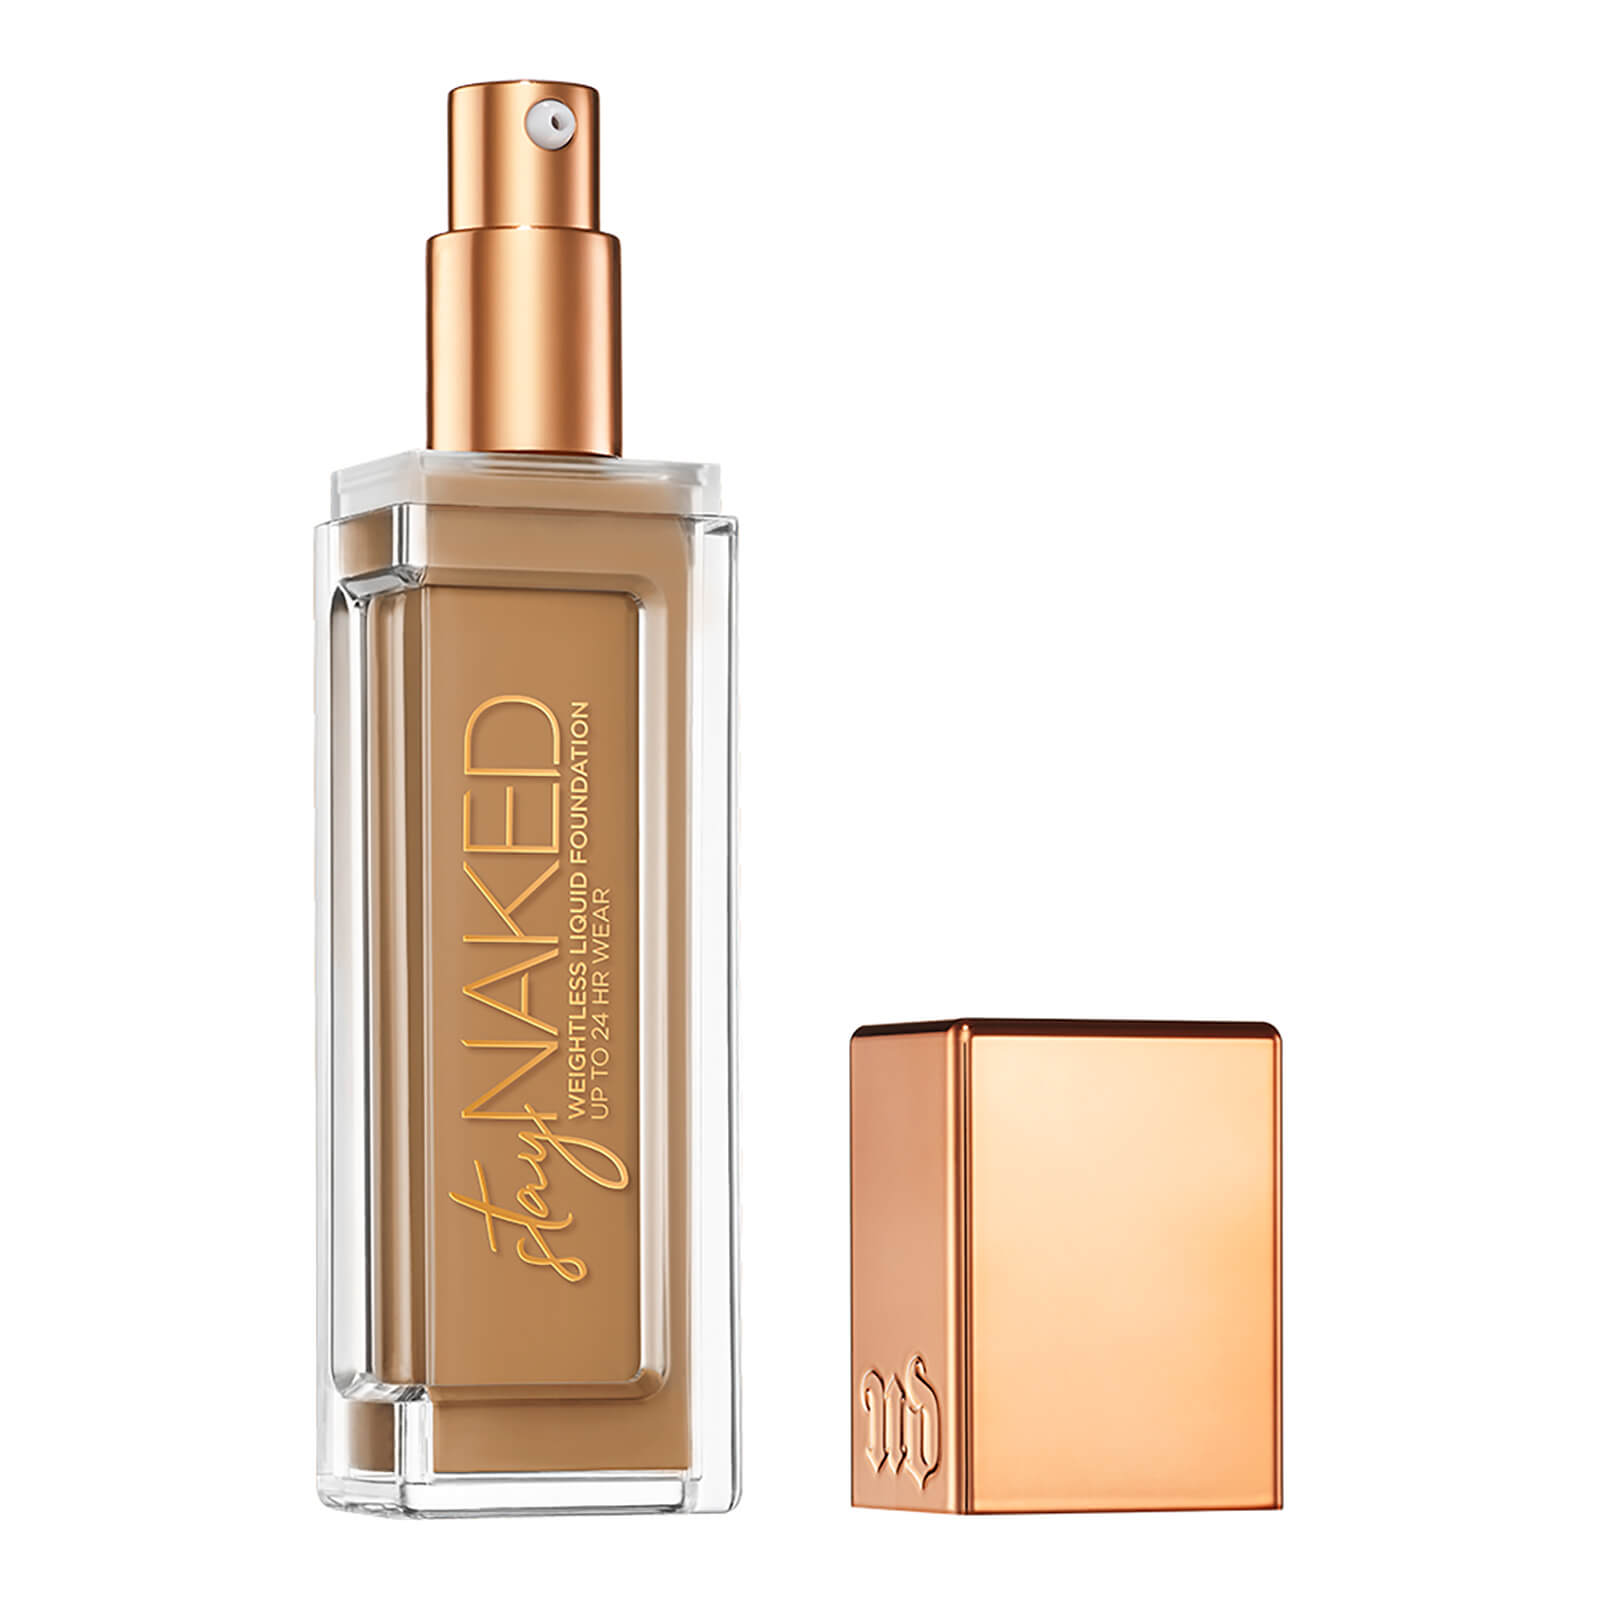 Urban Decay Stay Naked Foundation (Various Shades) - 60NN